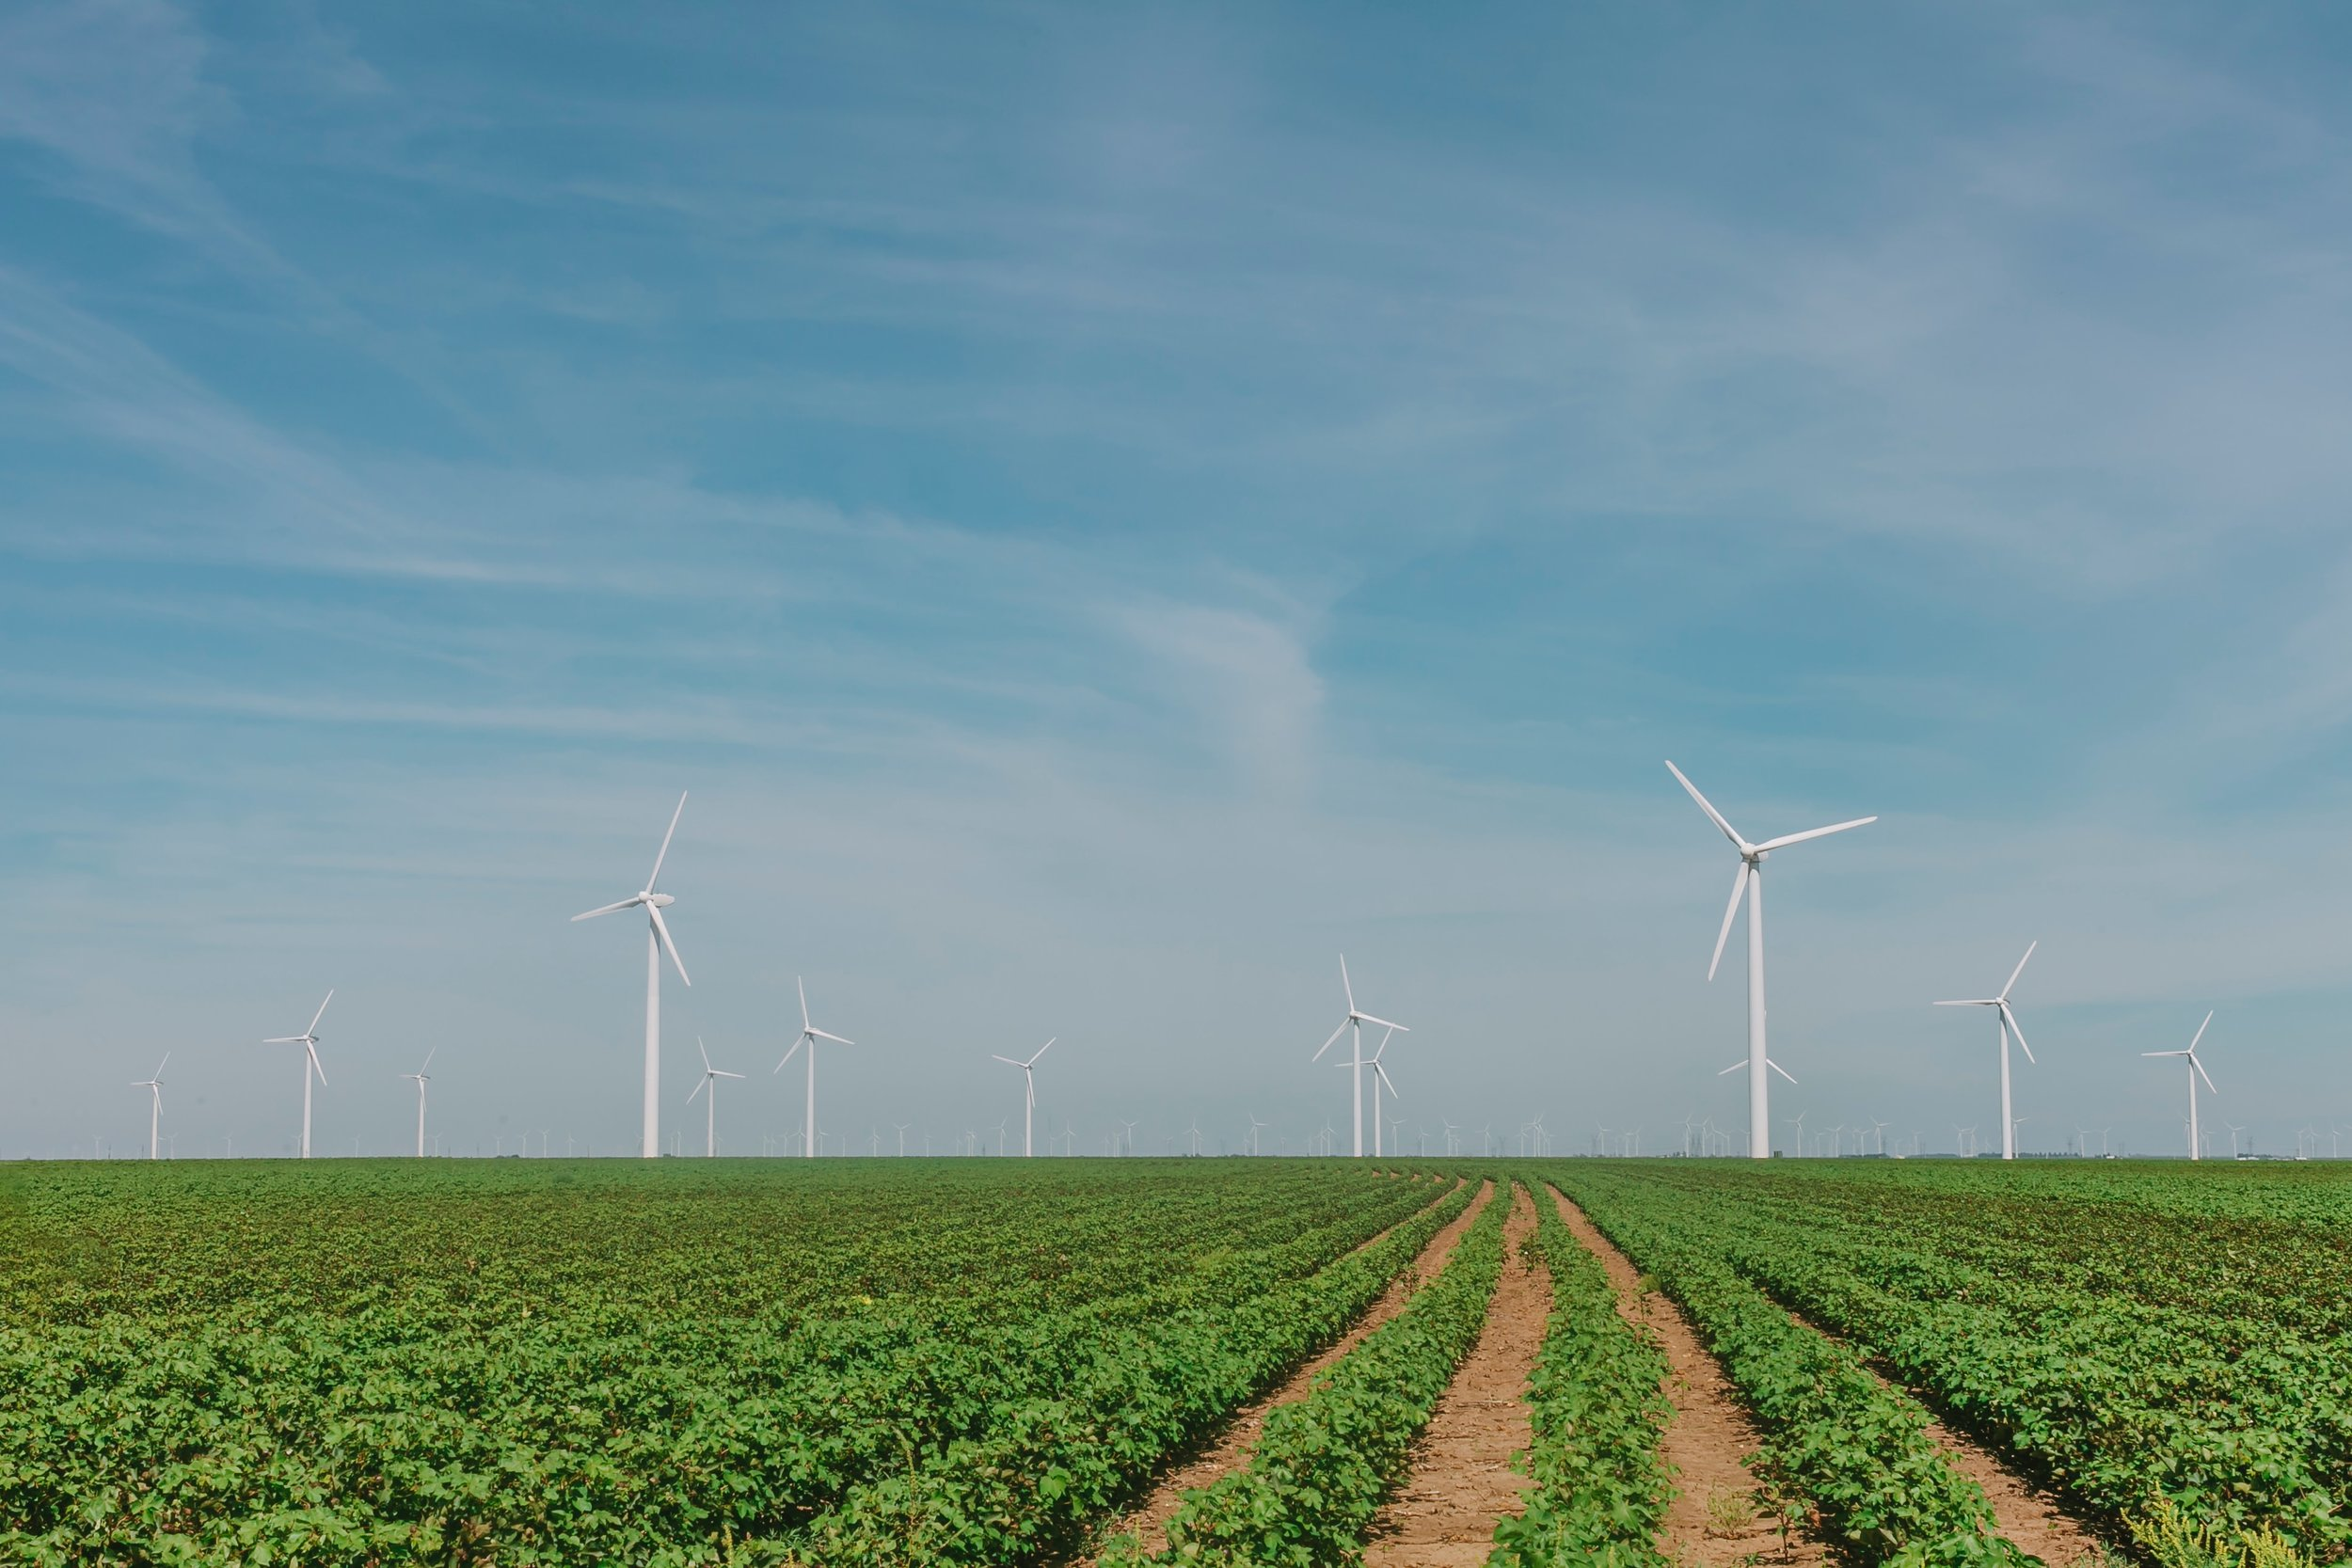 1.8 million tonnes of C02 was averted thanks to Portugal's renewable energy production